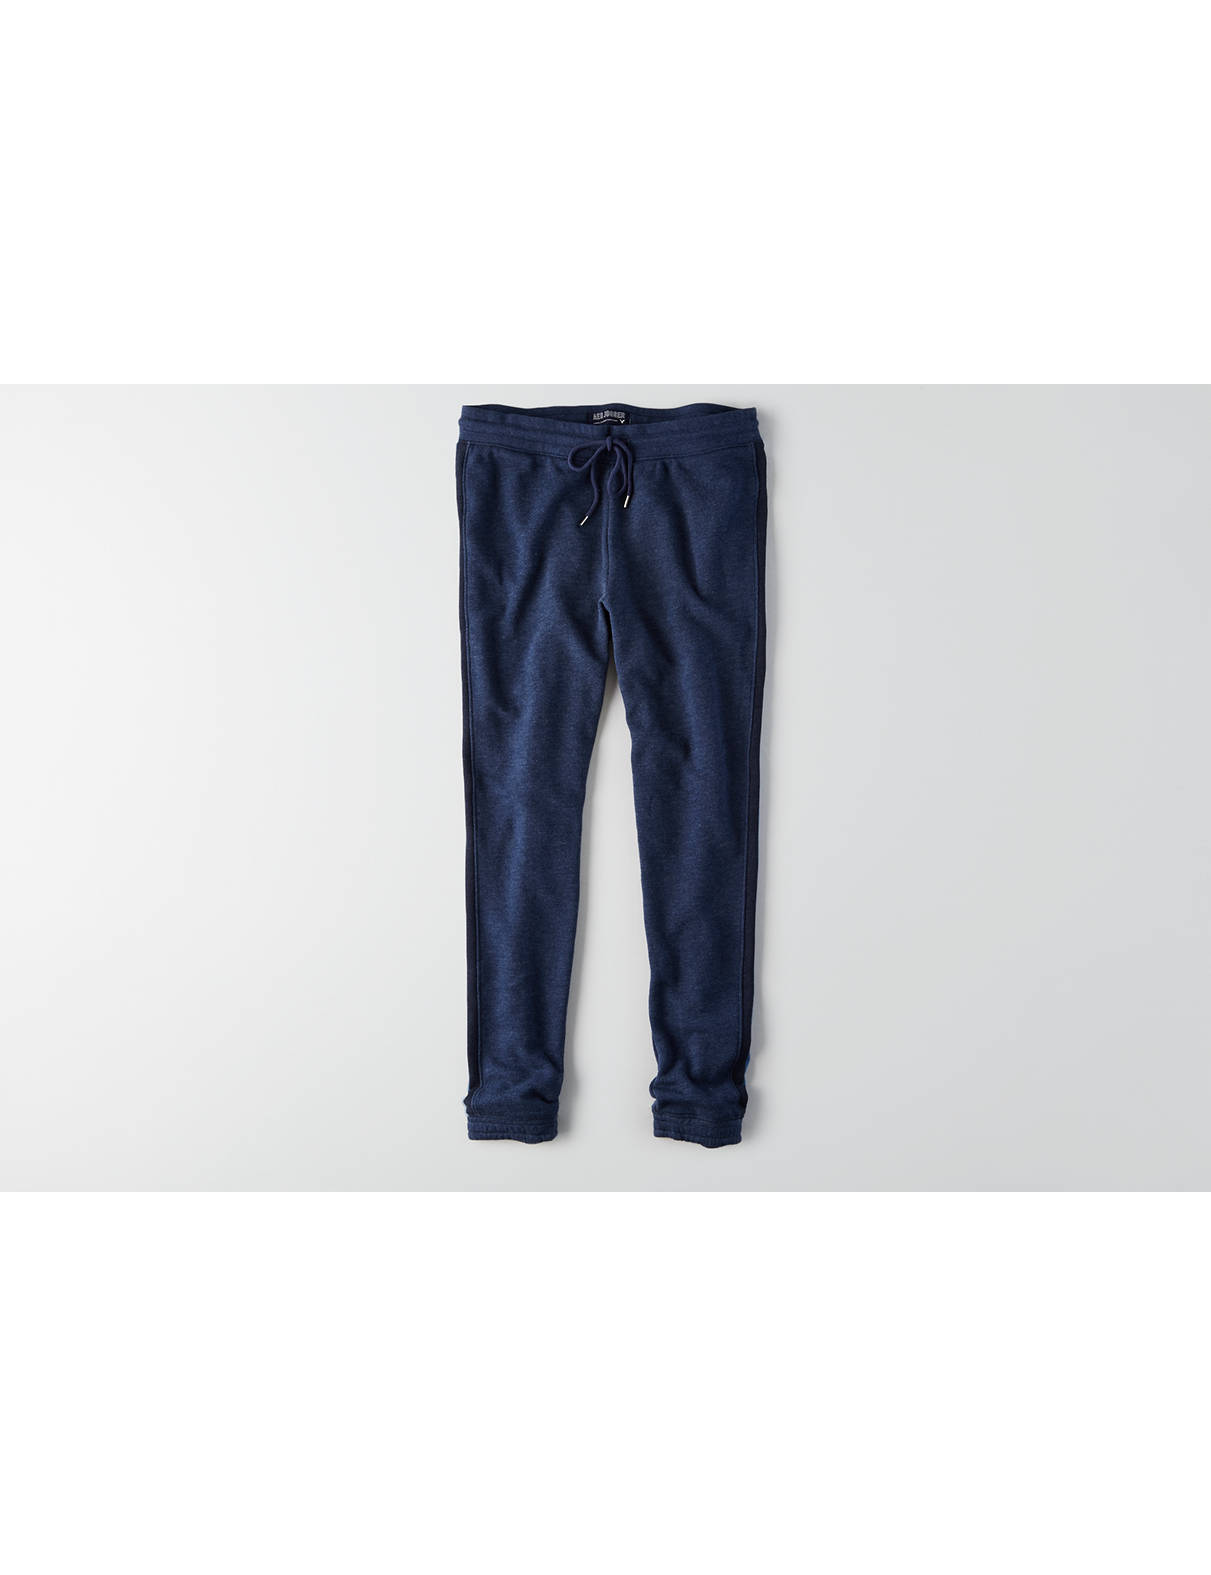 Women's Clearance - Bottoms | American Eagle Outfitters